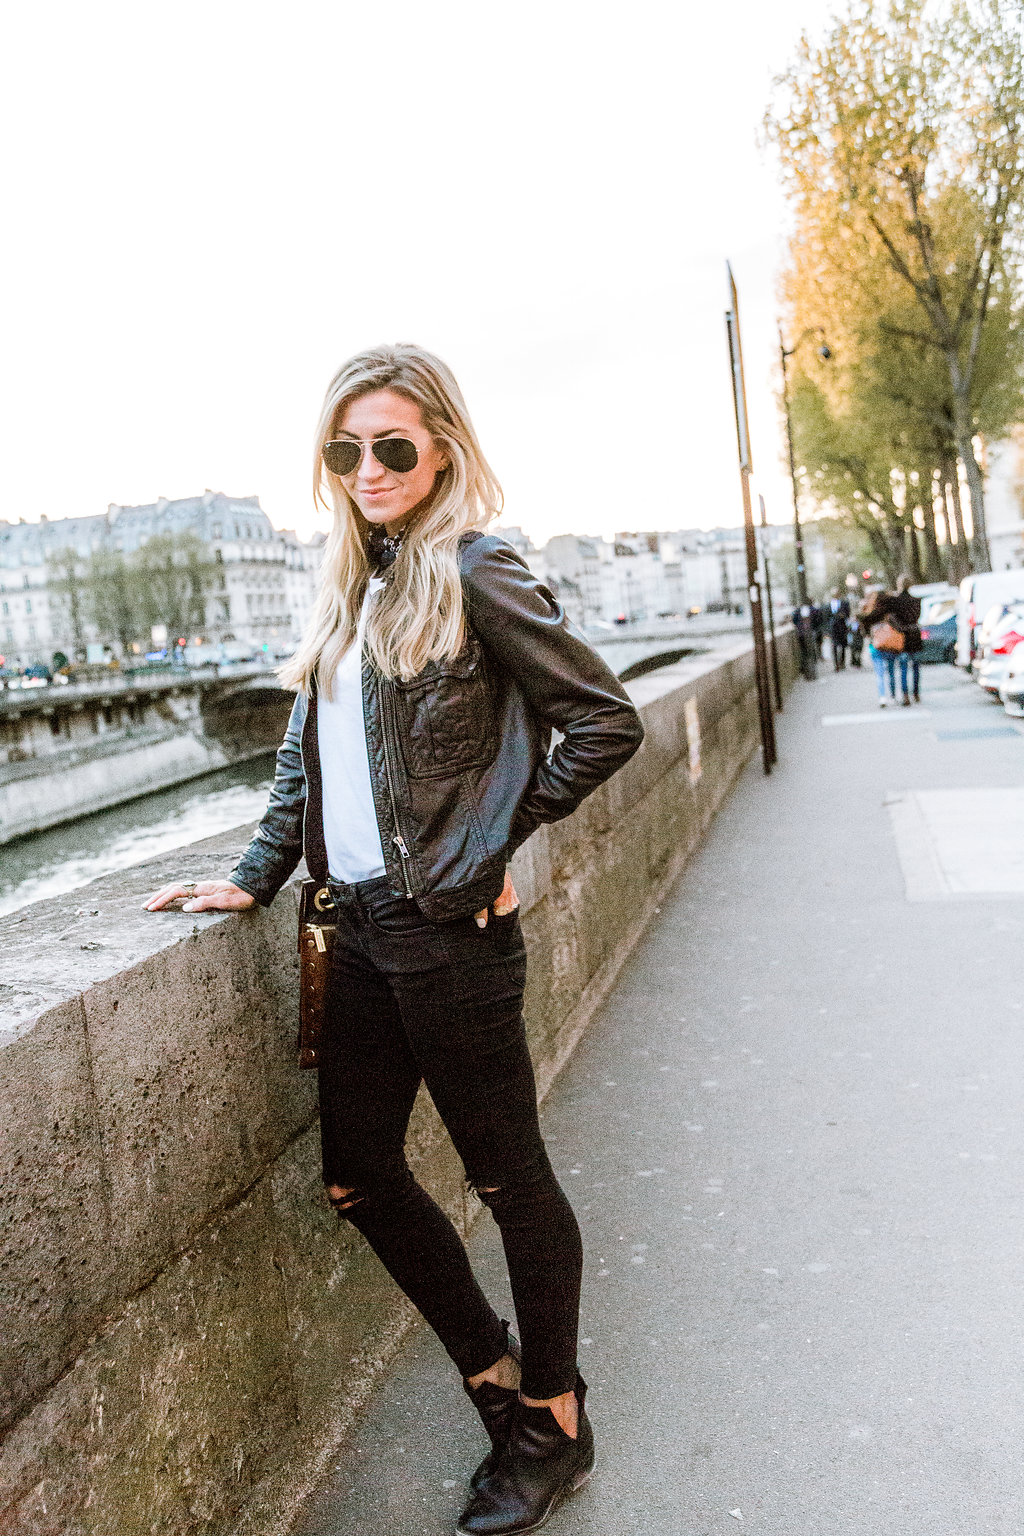 Parisian chic: Black + white + necktie,